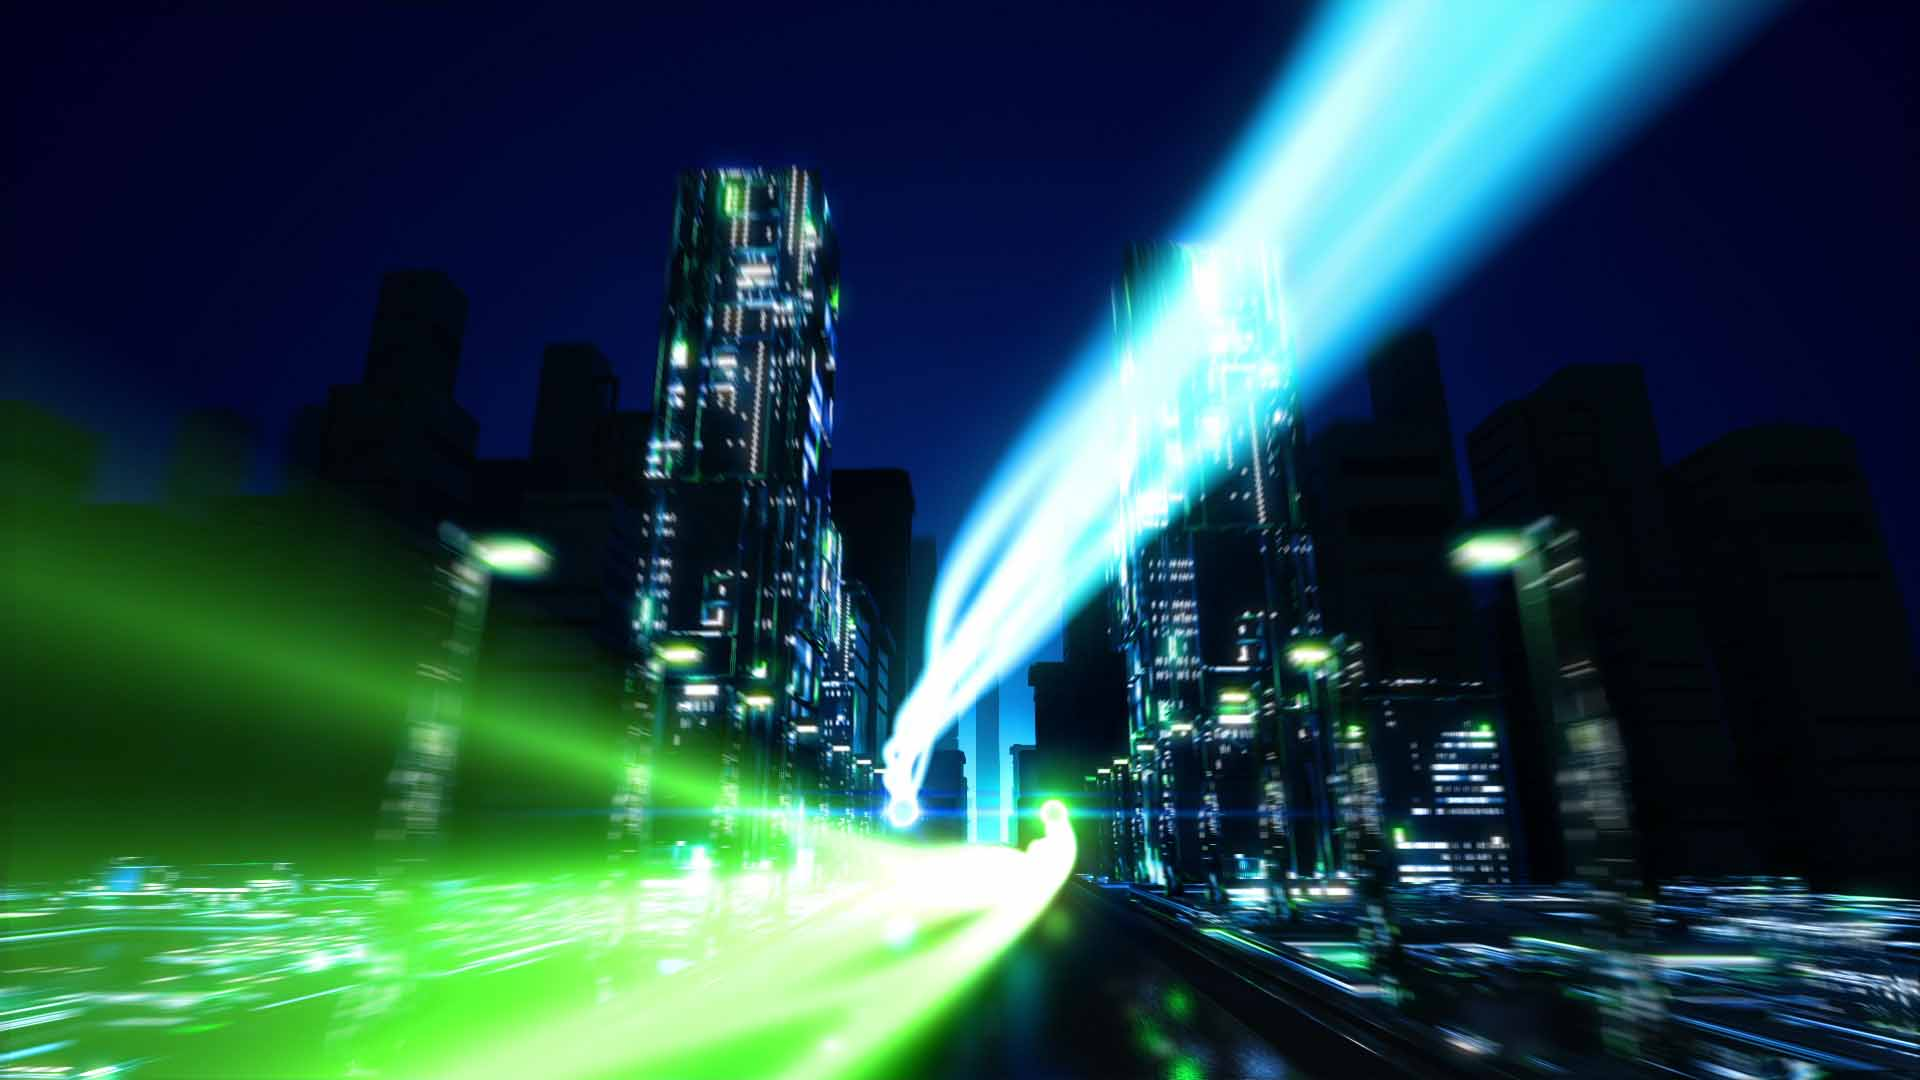 Two animated glowing spheres fly through a futuristic city